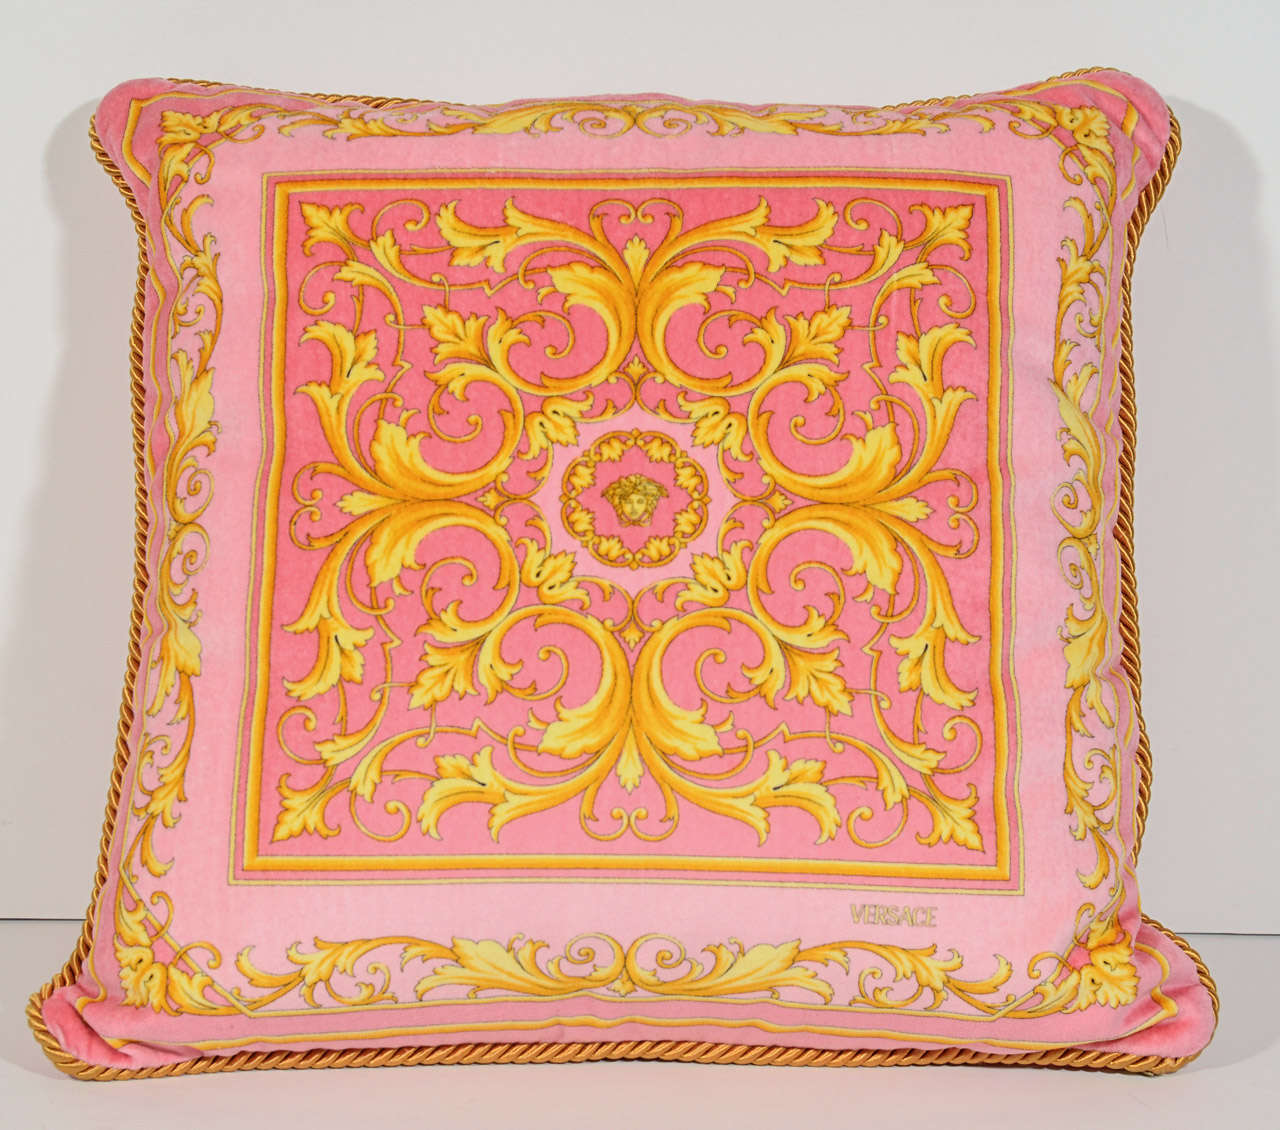 Set of 4 Vintage Versace Throw Pillows with Scarf Print Designs at 1stdibs